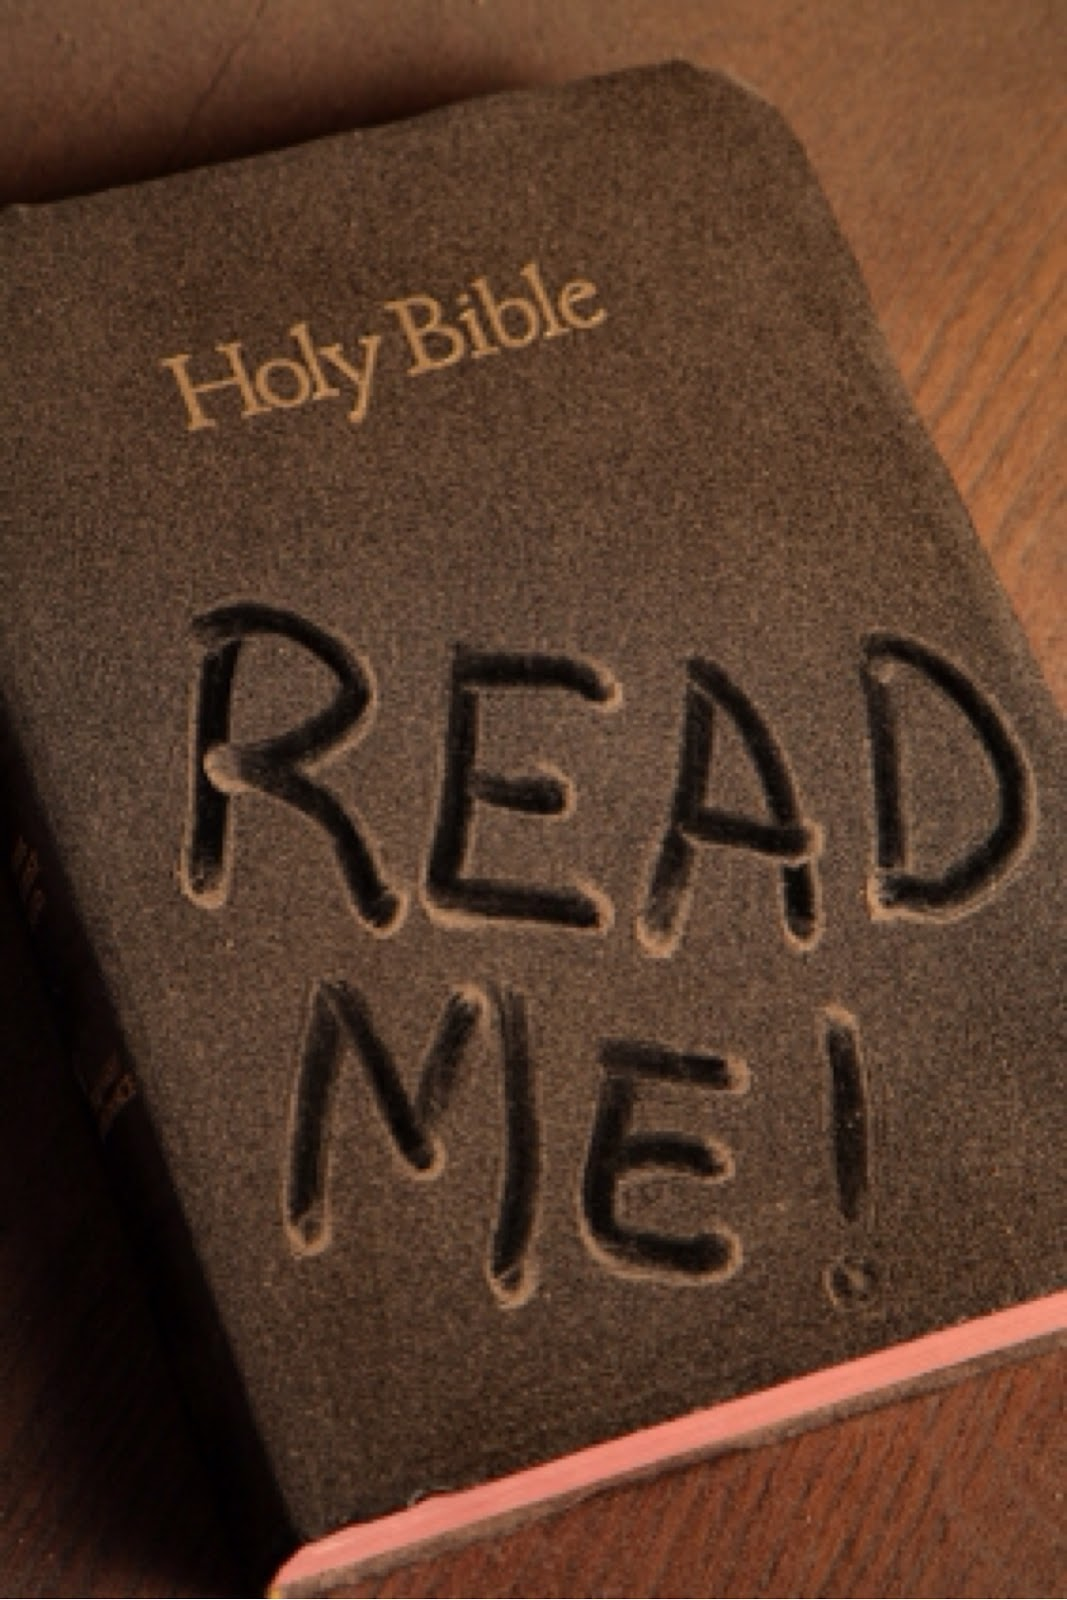 Use God's Word for daily guidance, for the word of God is quick, and powerful (Hebrews 4:12, KJV)